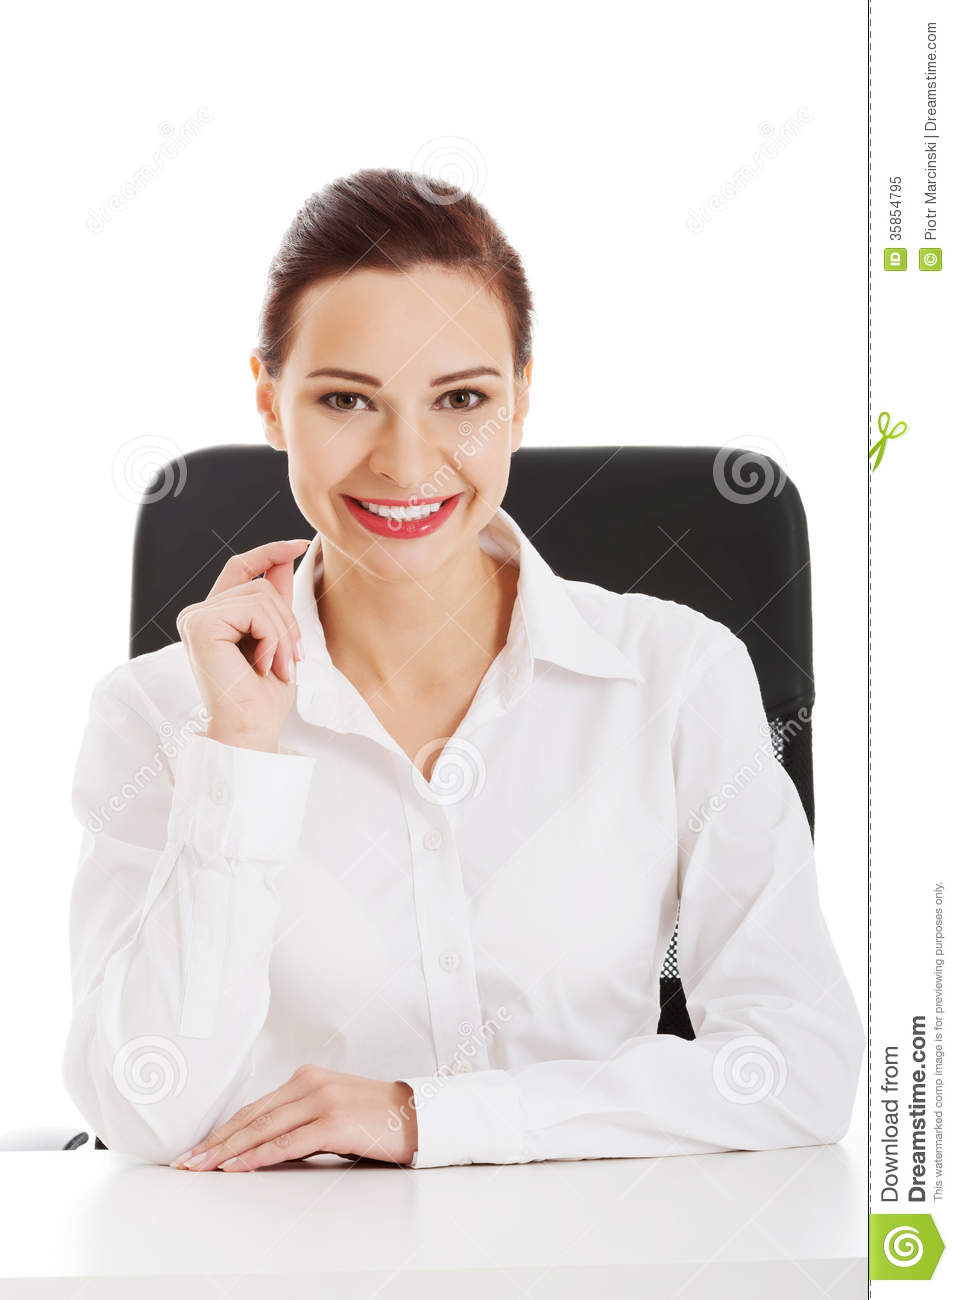 Interiordesignerindubai blogspot additionally synergyce besides Lawyer S Office 209617310 besides Stock Photo Politician Woman Speech Young Beautiful Elegant Giving Image40004380 likewise Royalty Free Stock Photo Beautiful Business Woman Boss Sitting Chair Isolated White Image35854795. on office max desk director